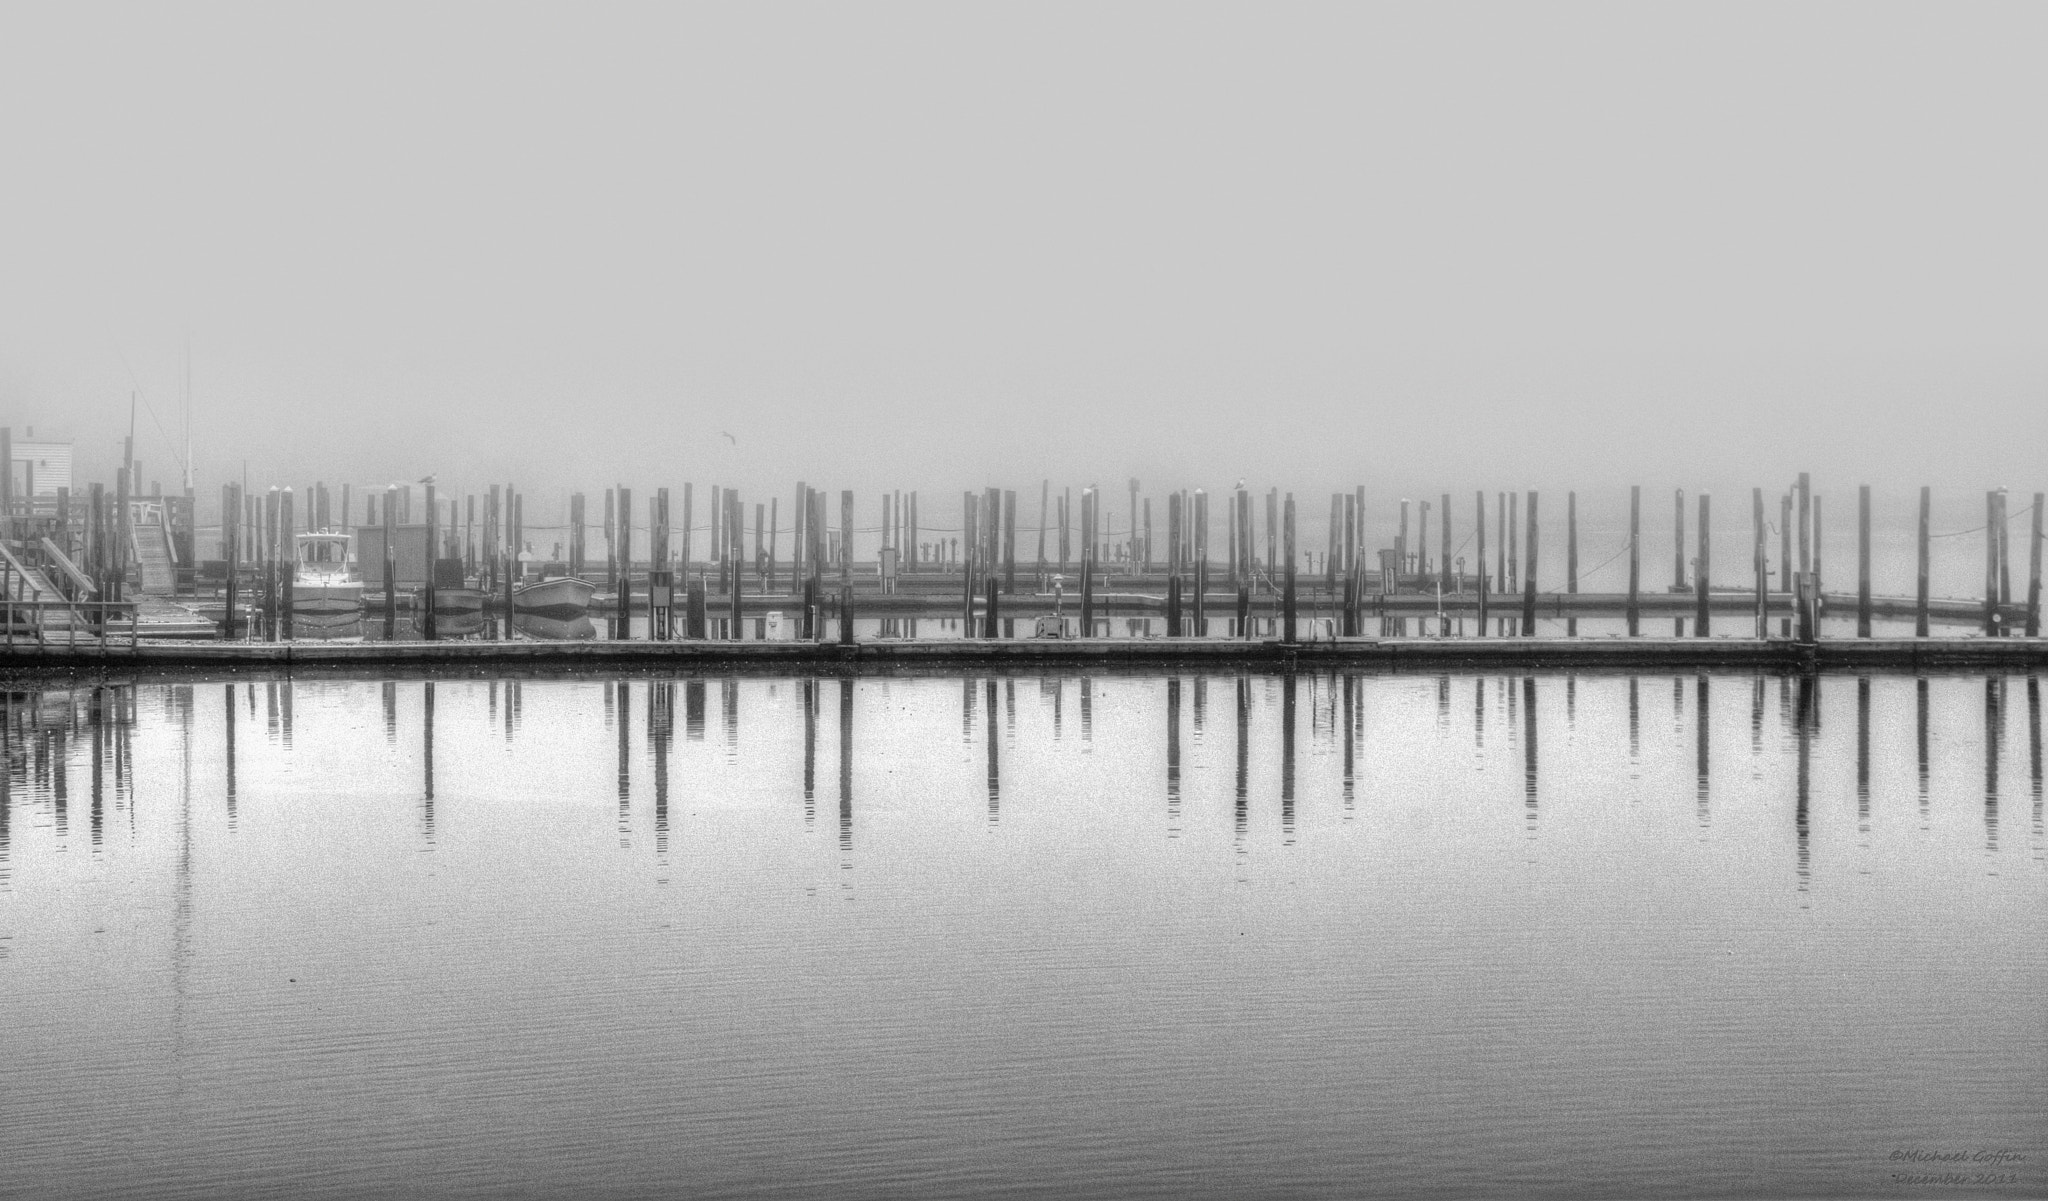 Photograph Dock in Fog by MICHAEL GOFFIN on 500px